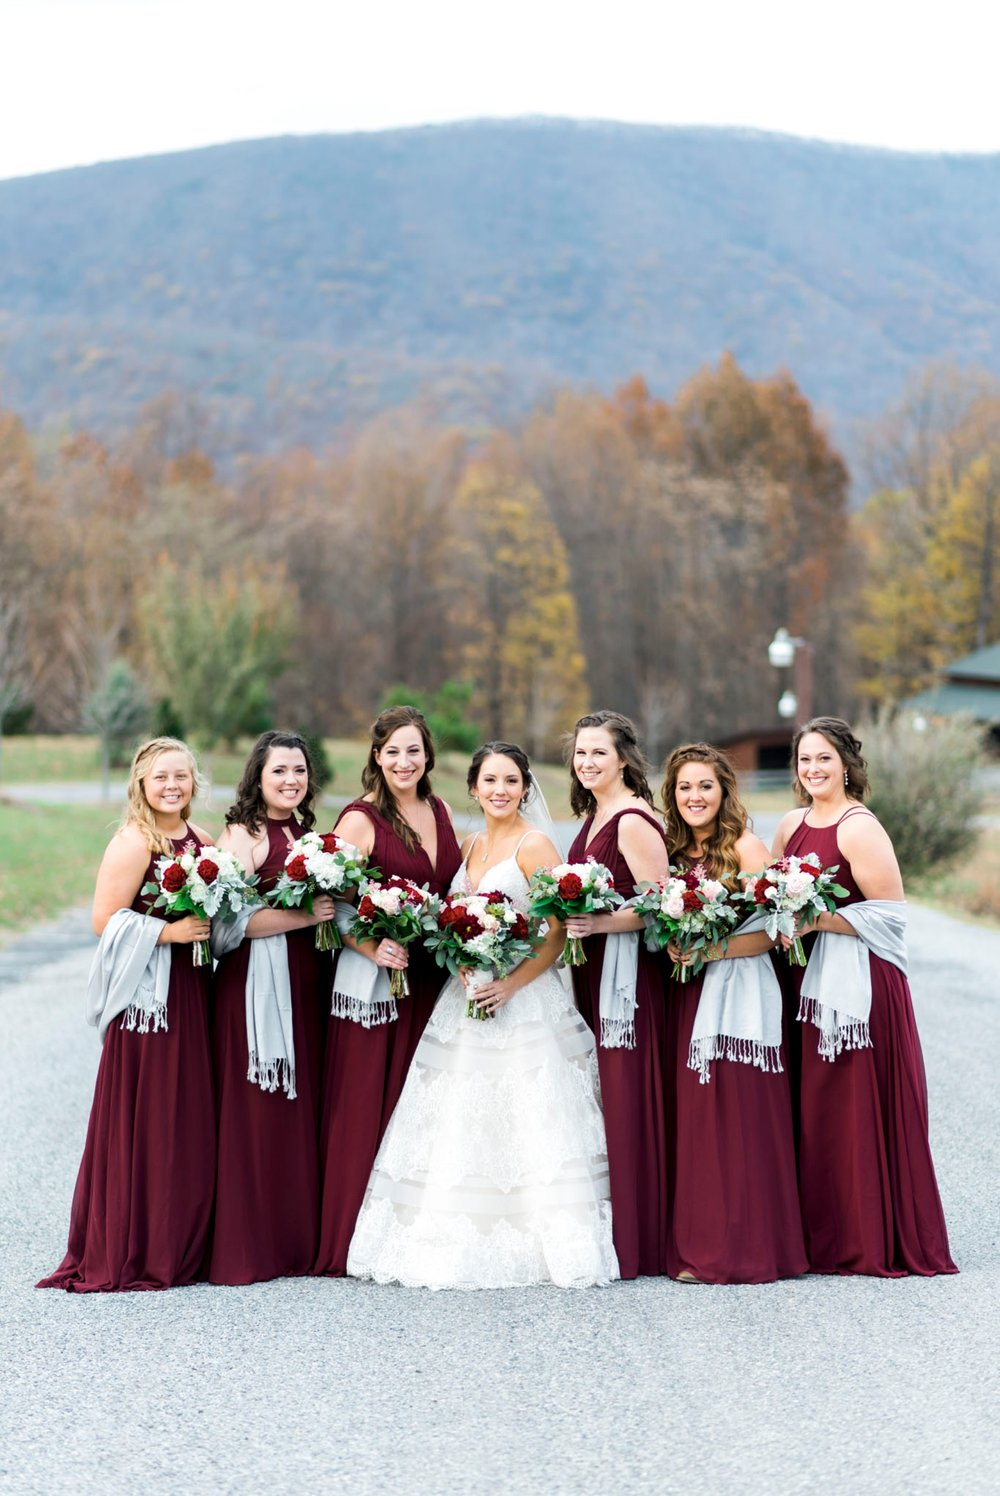 IrvineEstate_LexingtonVA_Wedding_FallWedding_VirginiaWeddingPhotographer 40.jpg